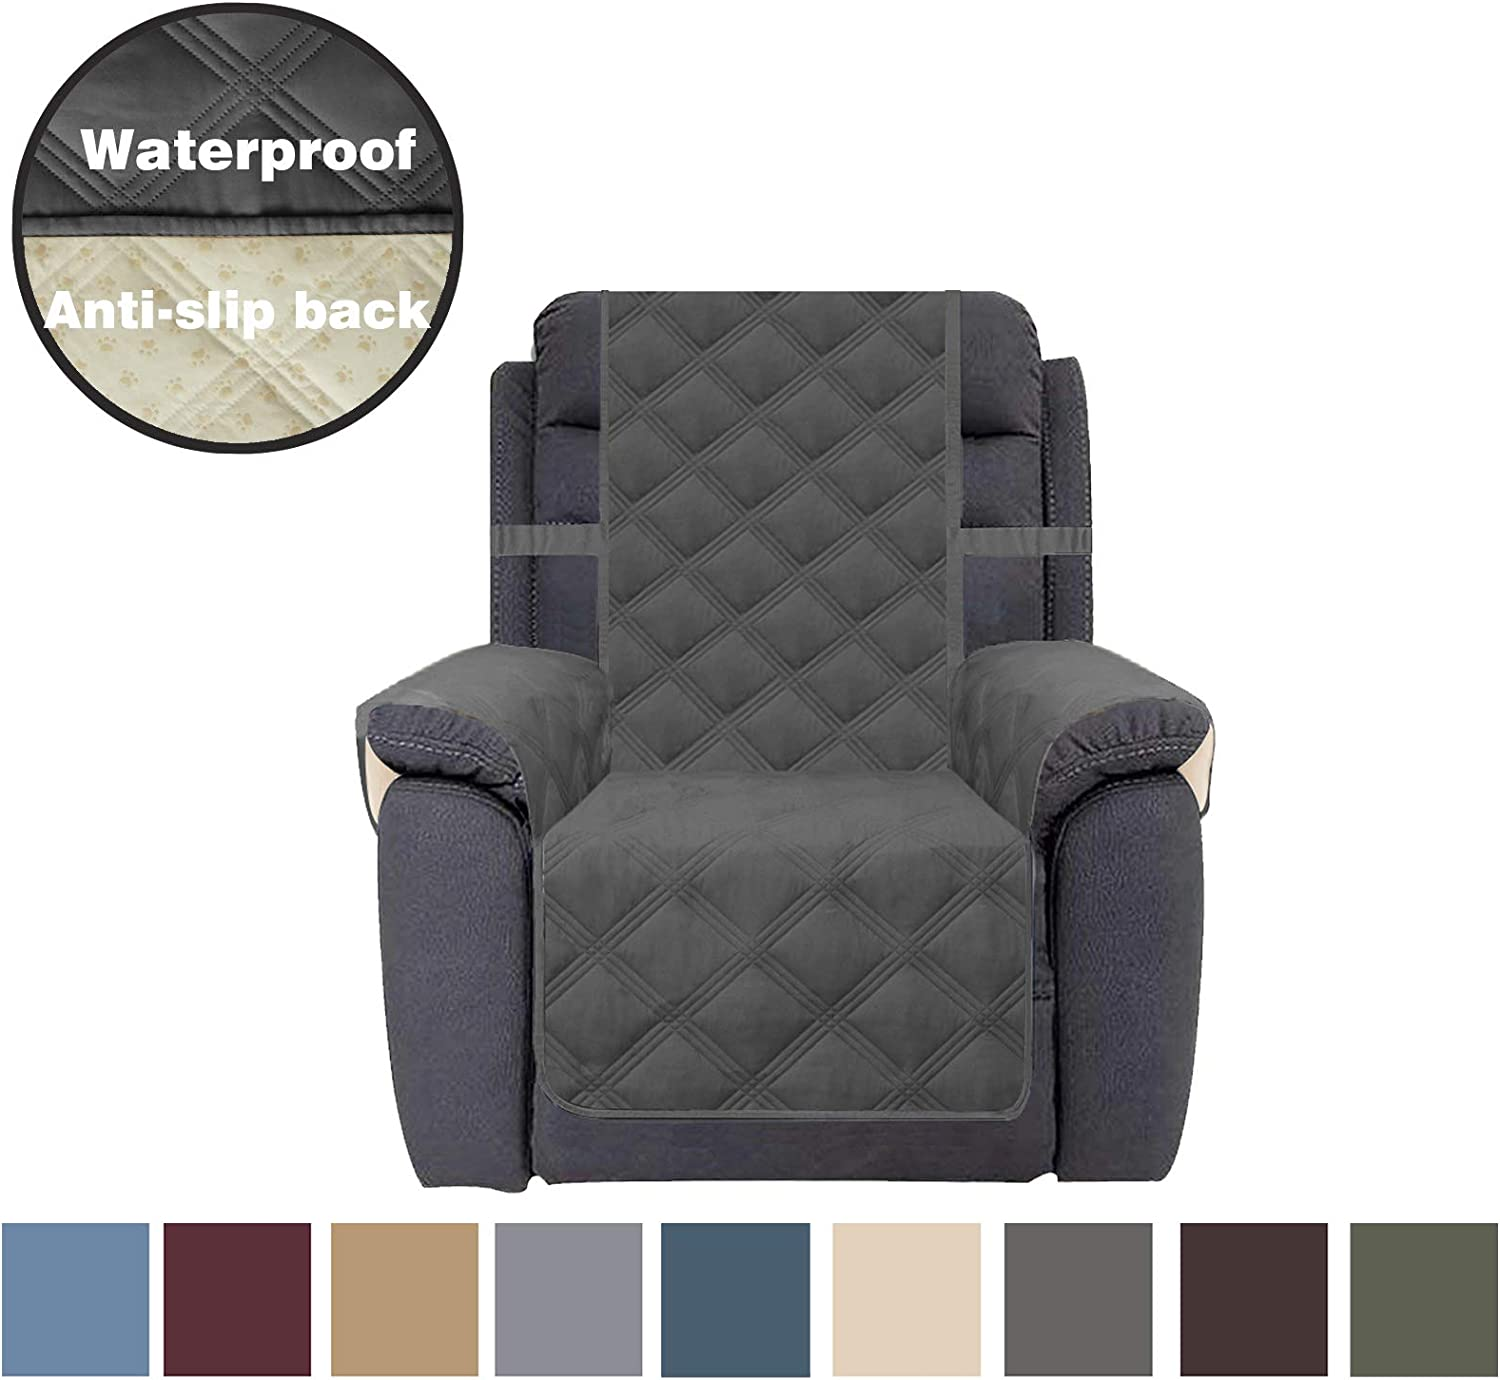 CHHKON Sofa Cover Waterproof with Anti-Skip Dog Paw Print 100% Quilted Furniture Protector Sofa Slipcover for Children, Pets for Leather Couch (Dark Gray, Recliner)